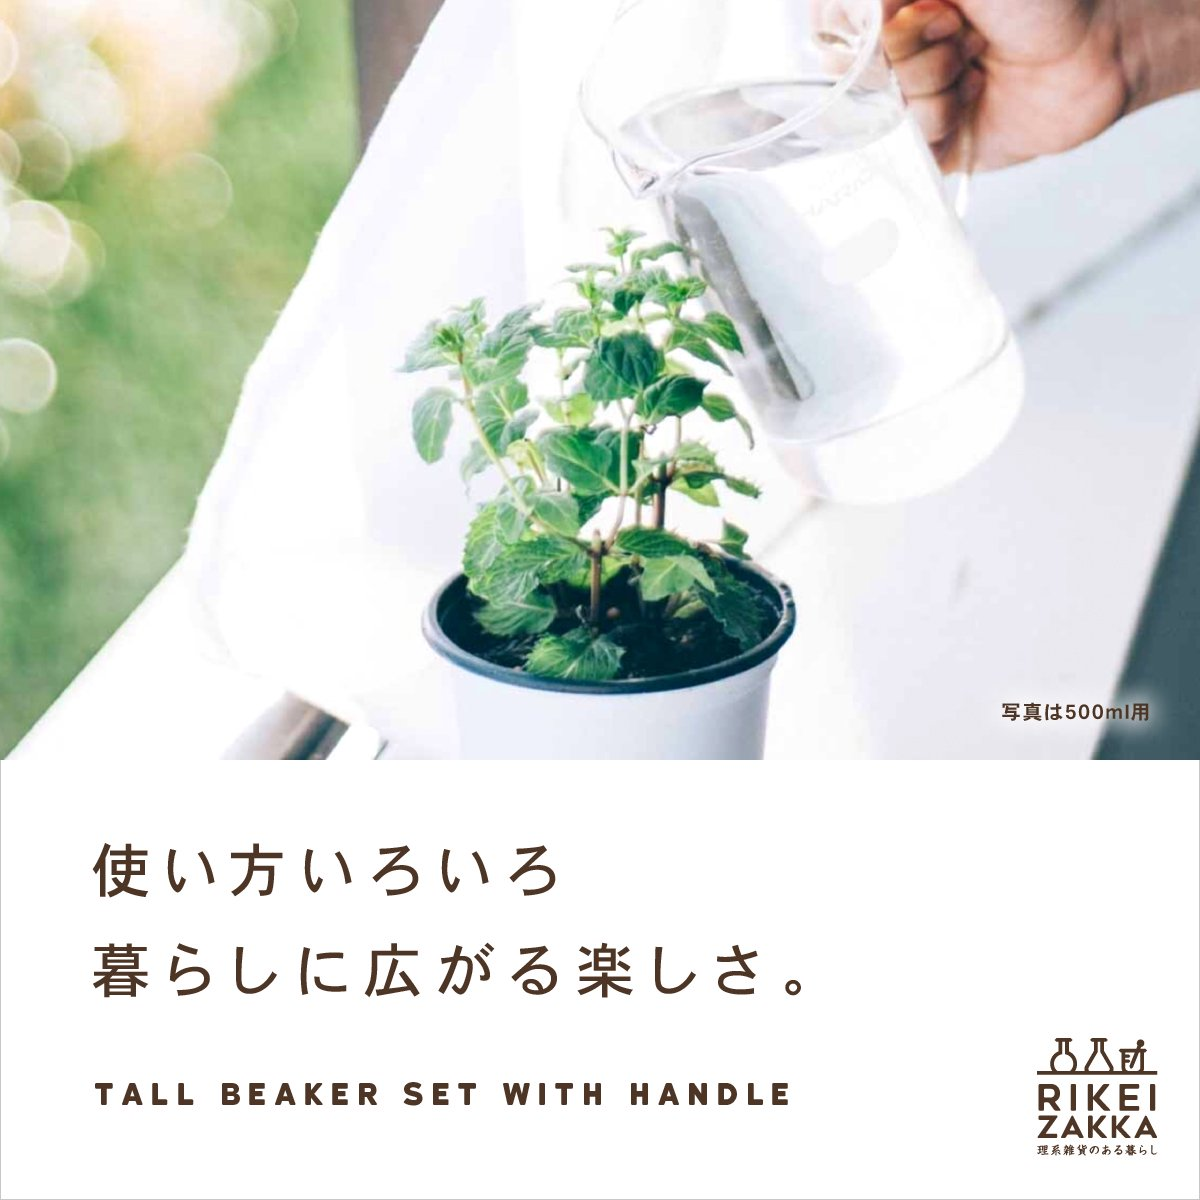 <img class='new_mark_img1' src='https://img.shop-pro.jp/img/new/icons14.gif' style='border:none;display:inline;margin:0px;padding:0px;width:auto;' />取っ手付きトールビーカー  300ml